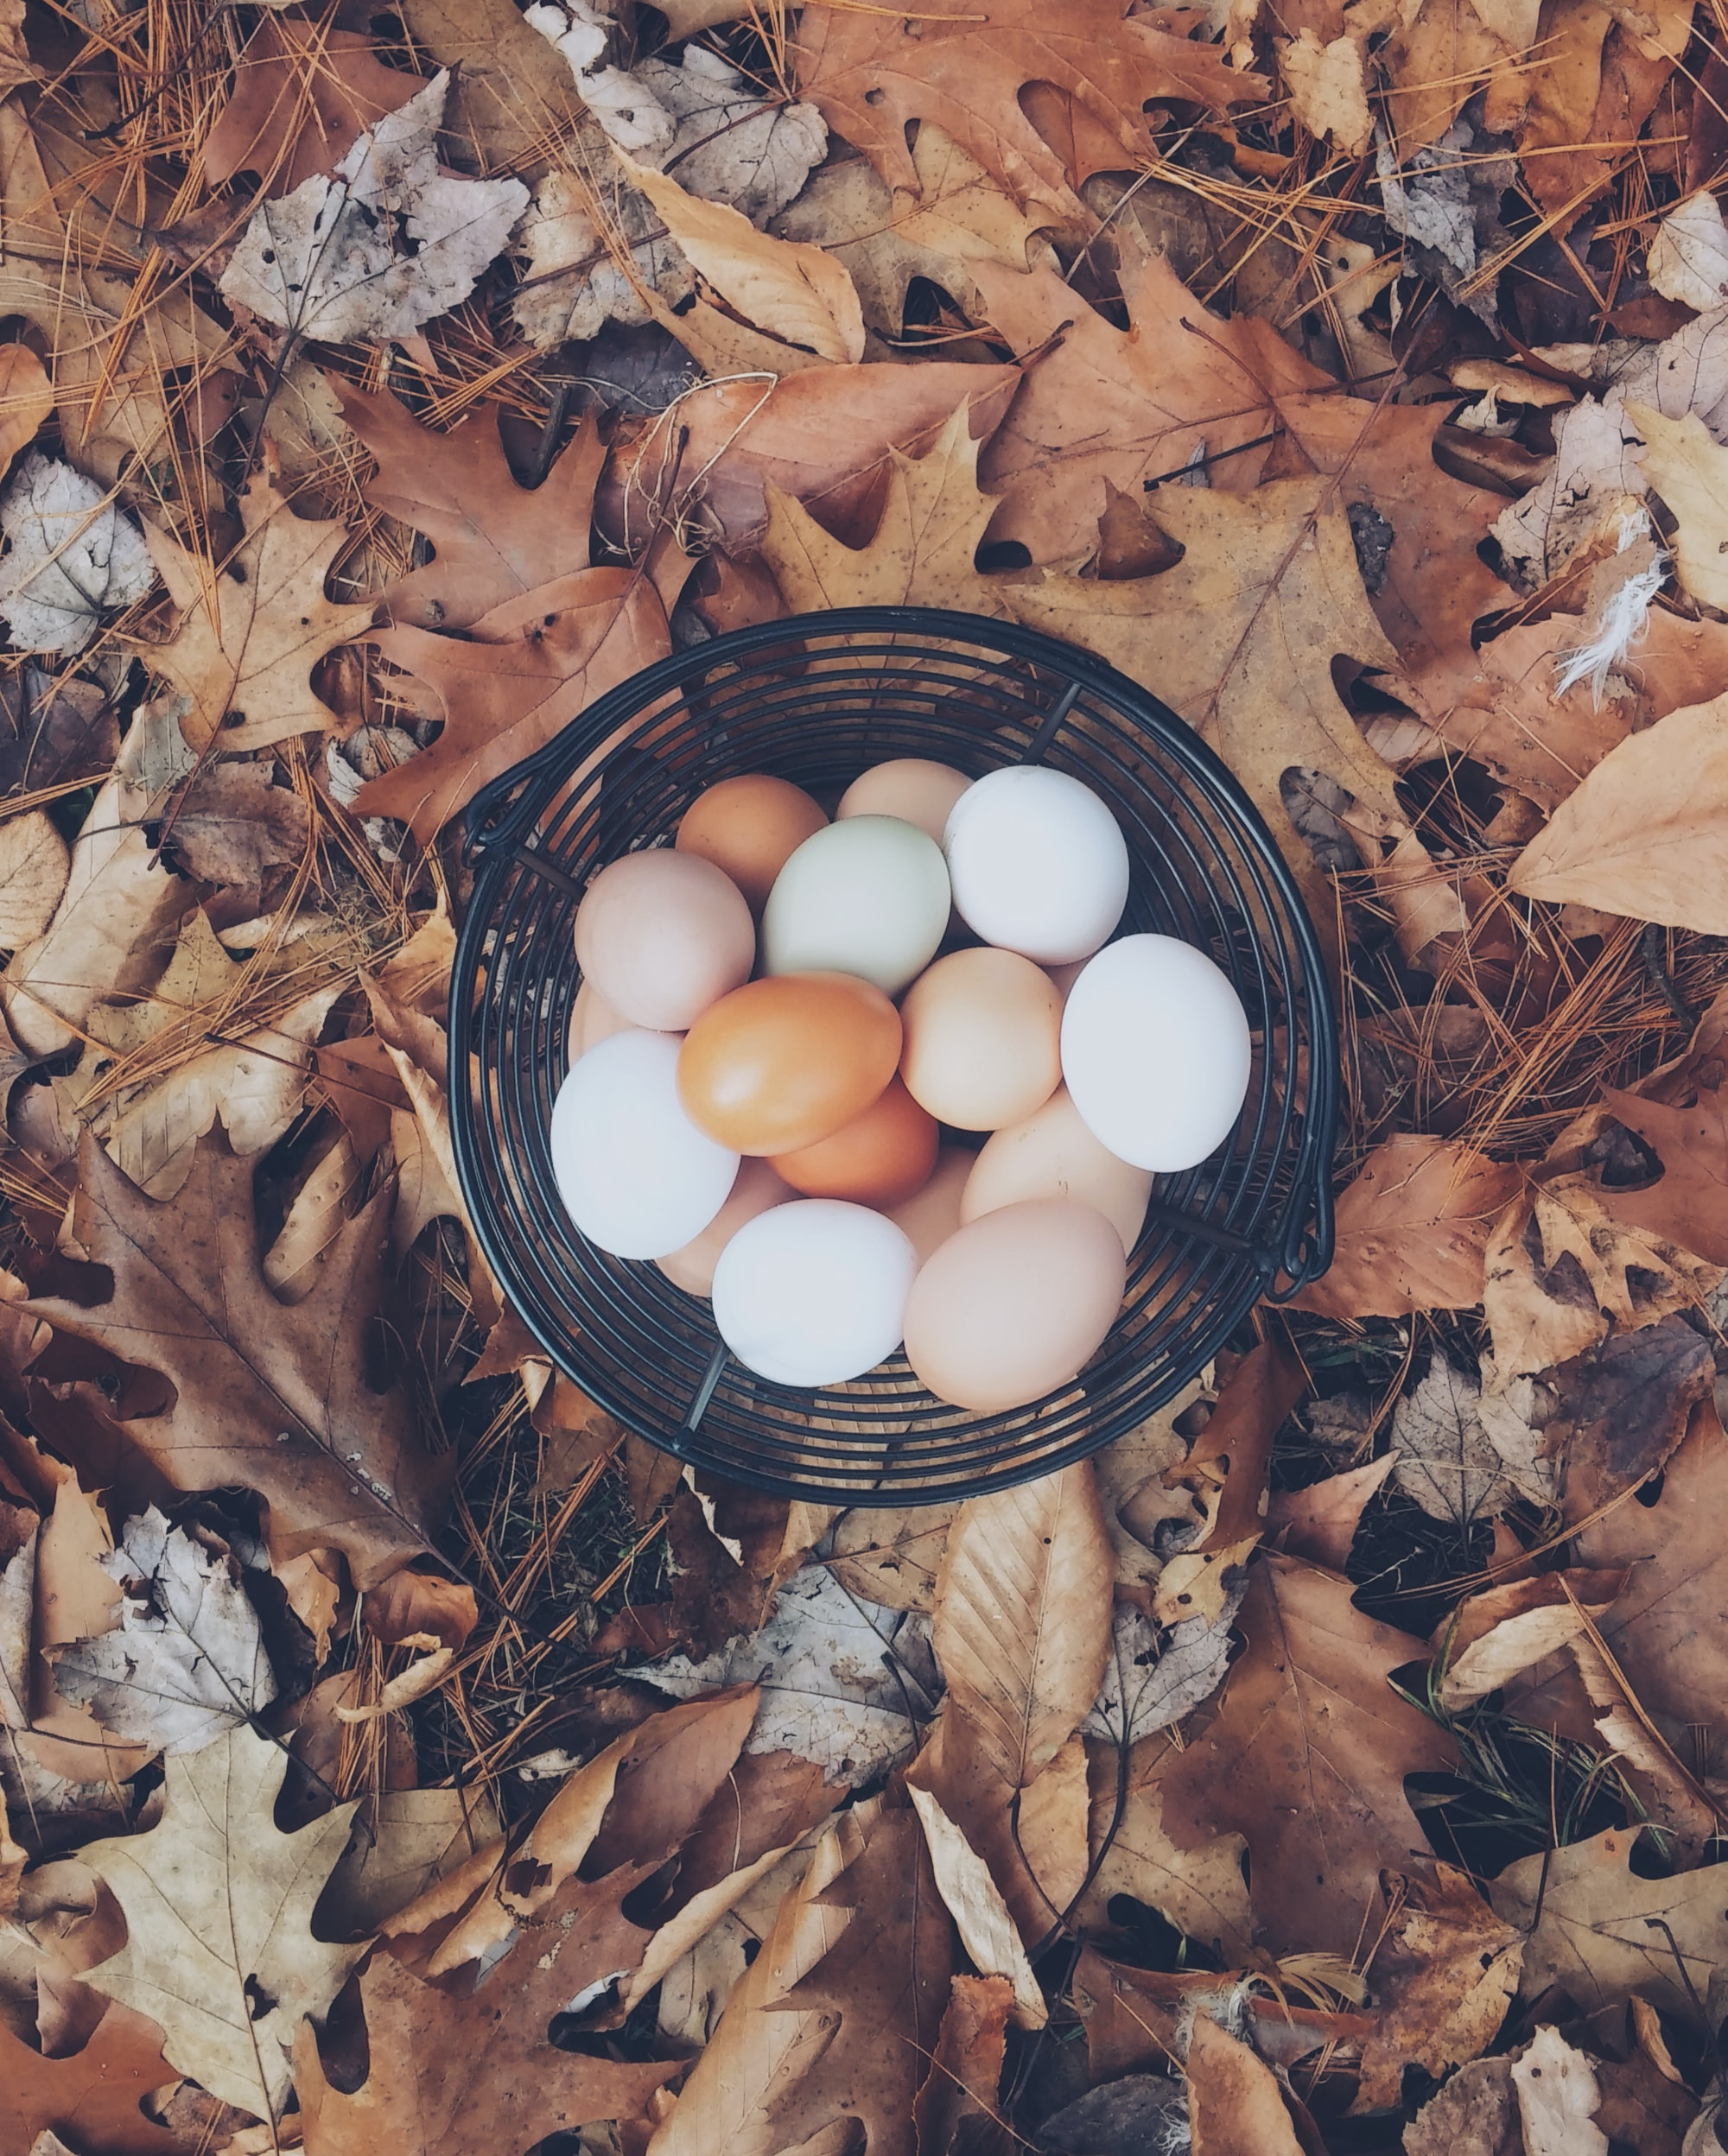 About eggs and baskets - password managers